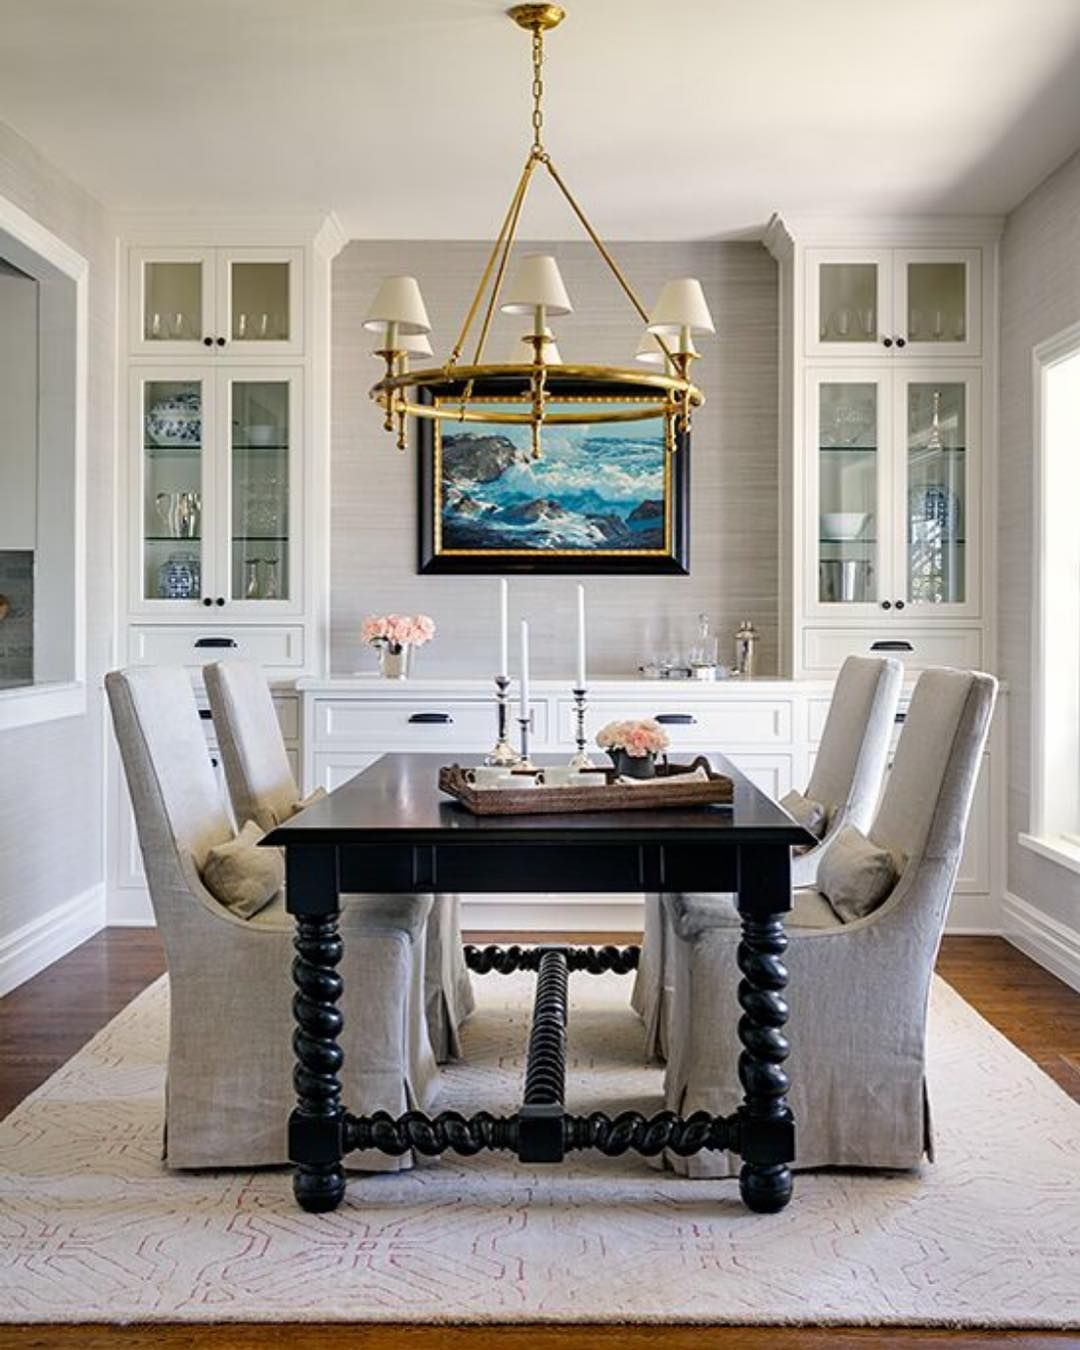 Casual Dining Room Buffet Decorating Ideas: Well Worth The Repeat. A Cozy And Casual Dining Room At